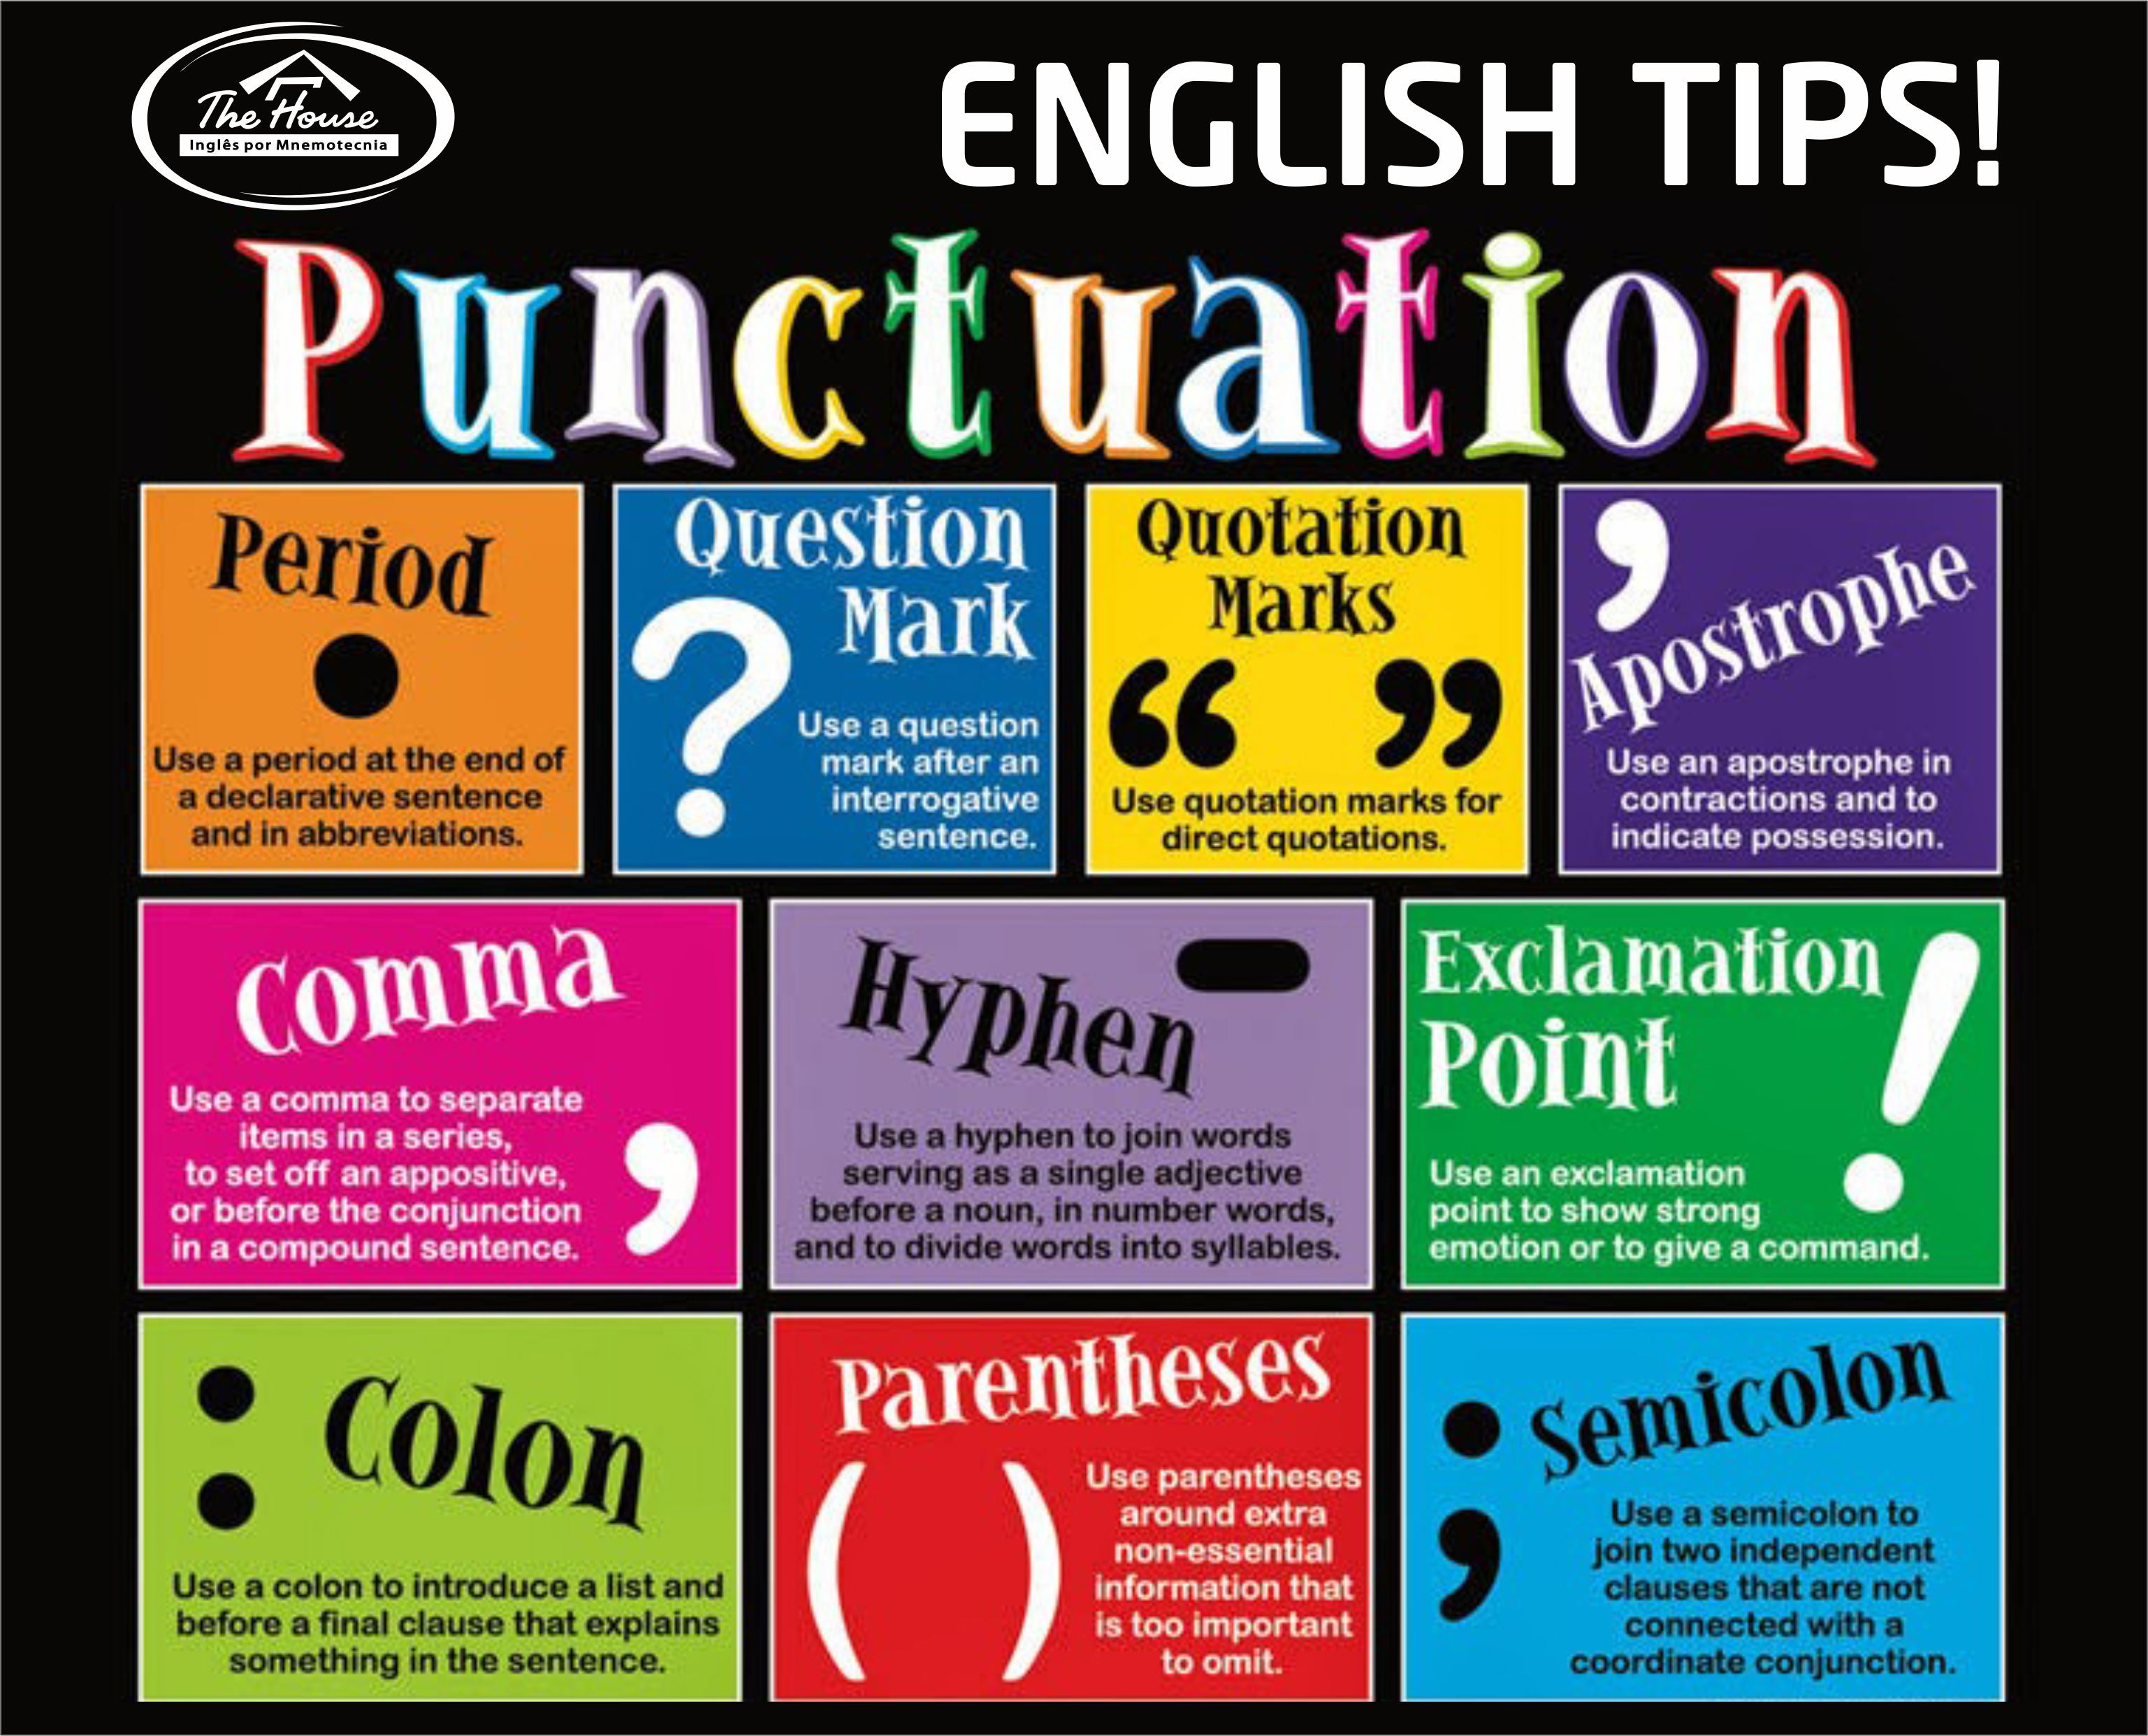 Punctuation In English Language Punctuation Tips